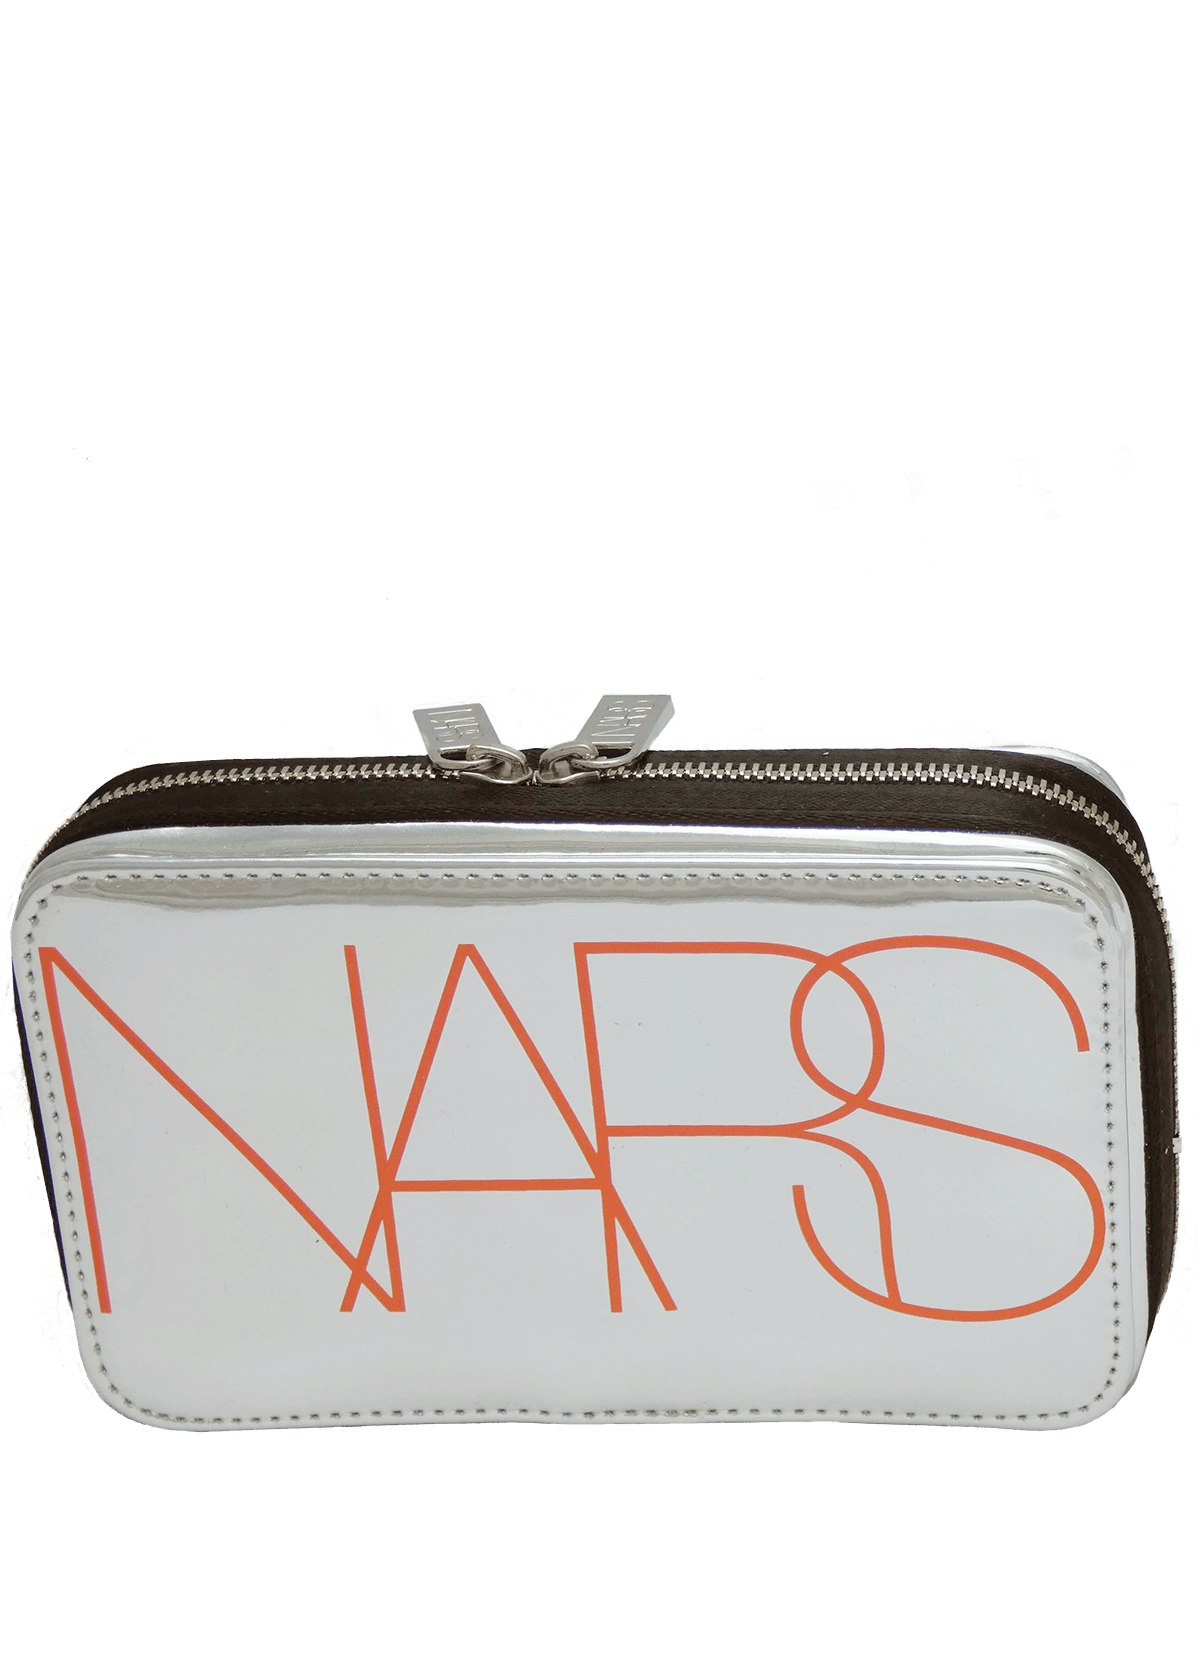 NARS limited edition makeup pouch